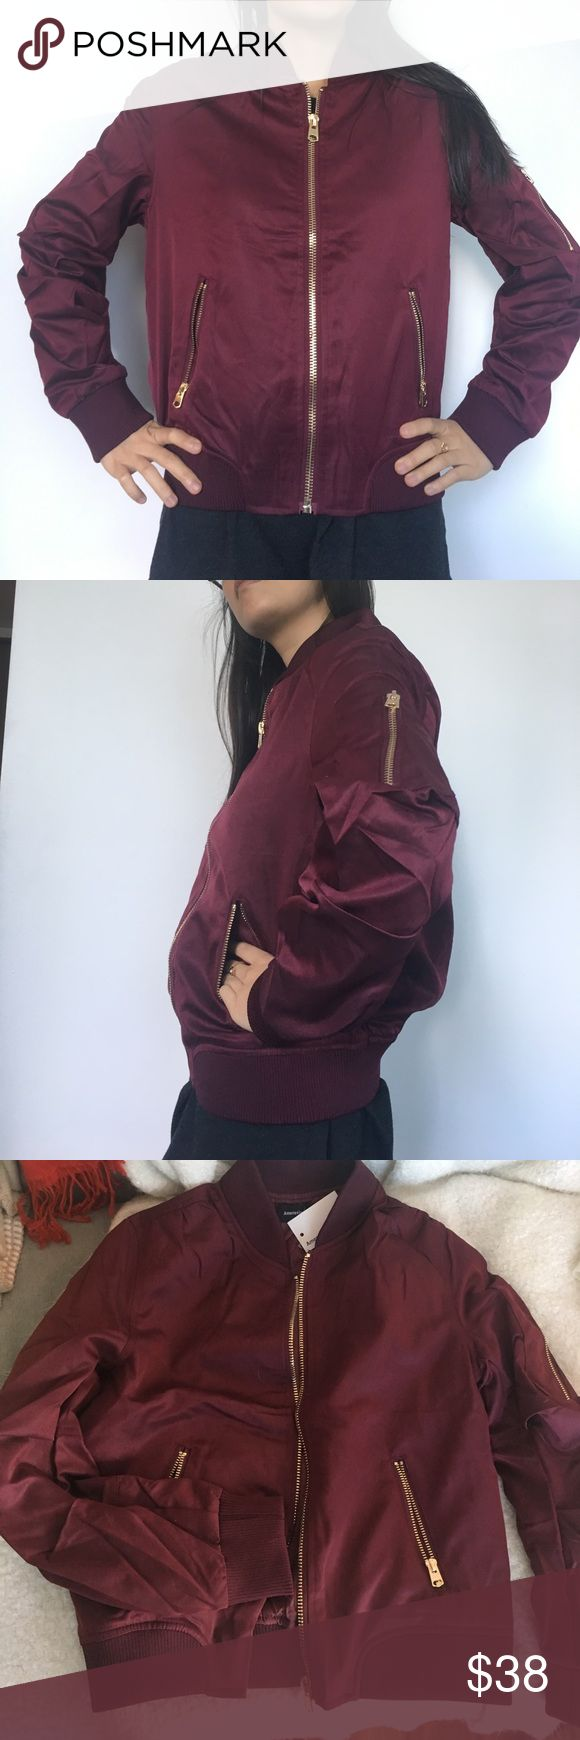 NWT burgundy sheen bomber jacket NWT burgundy sheen bomber jacket from a boutique Asian brand. Super stylish and a unique color. Gold zippers give it a nice accent. Size S though I think runs half a size small so it would look fitted on a S and fits XS as well. M will fit both sizes S and M. (Model usually wears xxs-xs) I also have one in black for size S belle and co Jackets & Coats